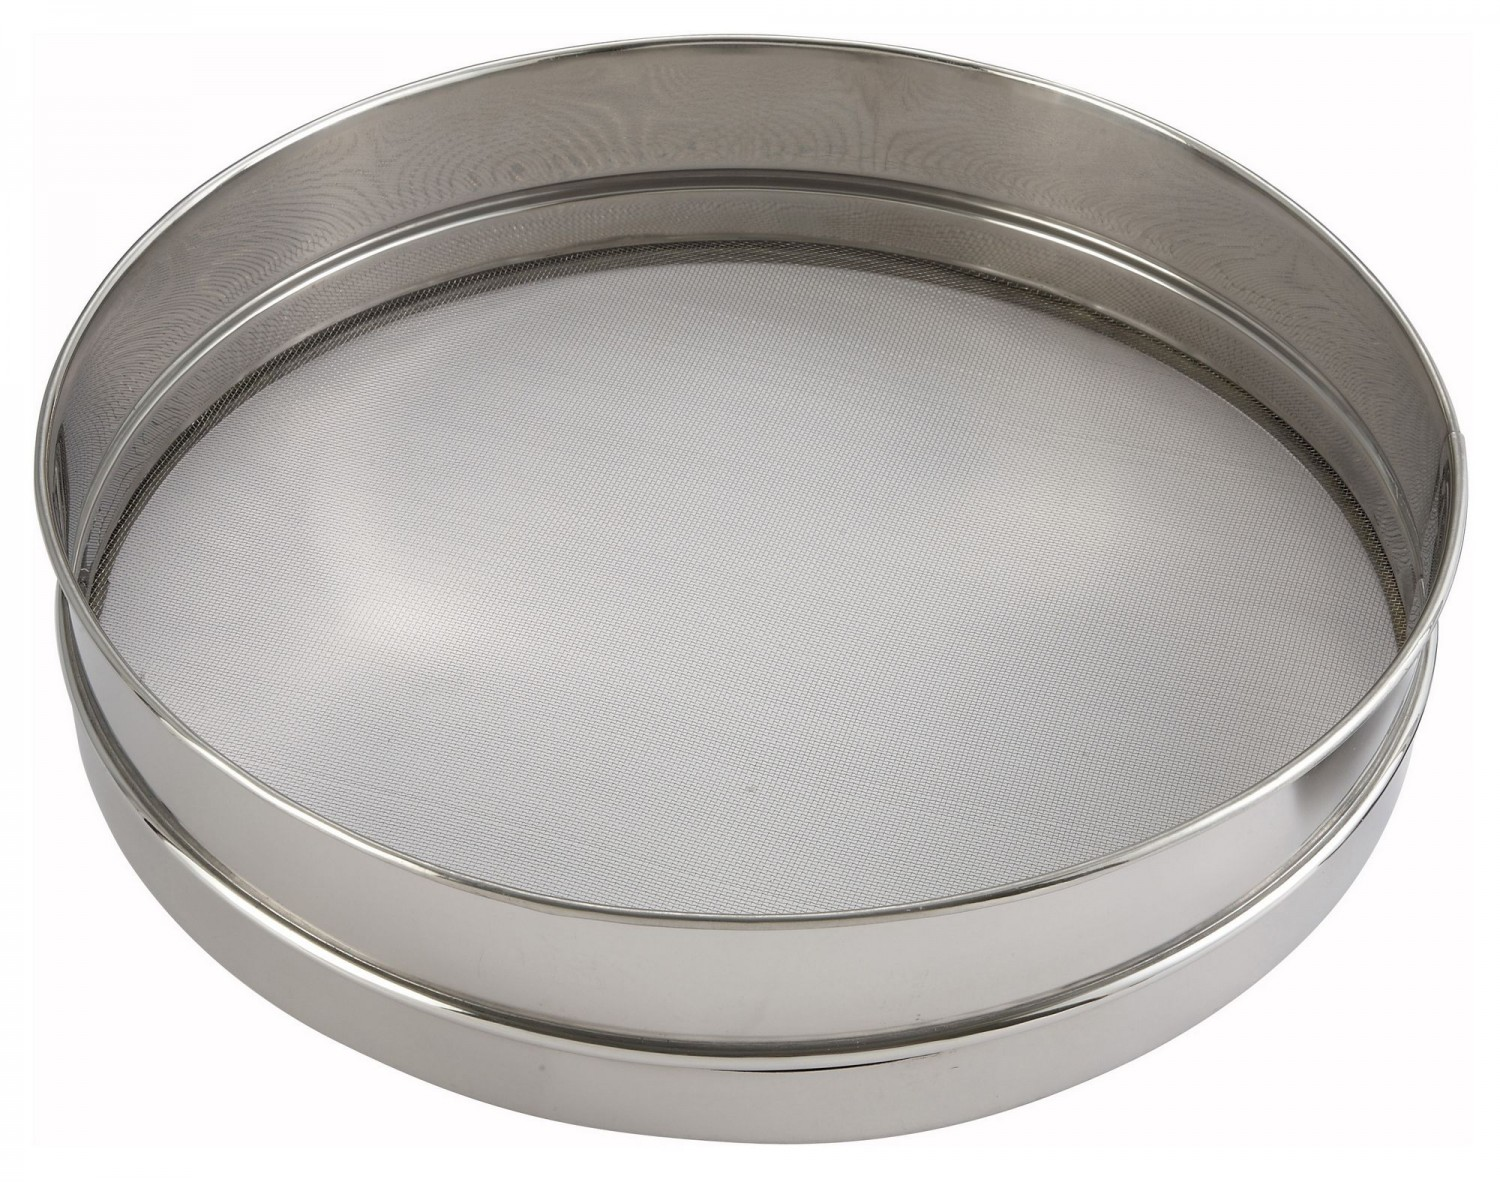 Winco SIV-12 Stainless Steel Mesh Sieve 12""